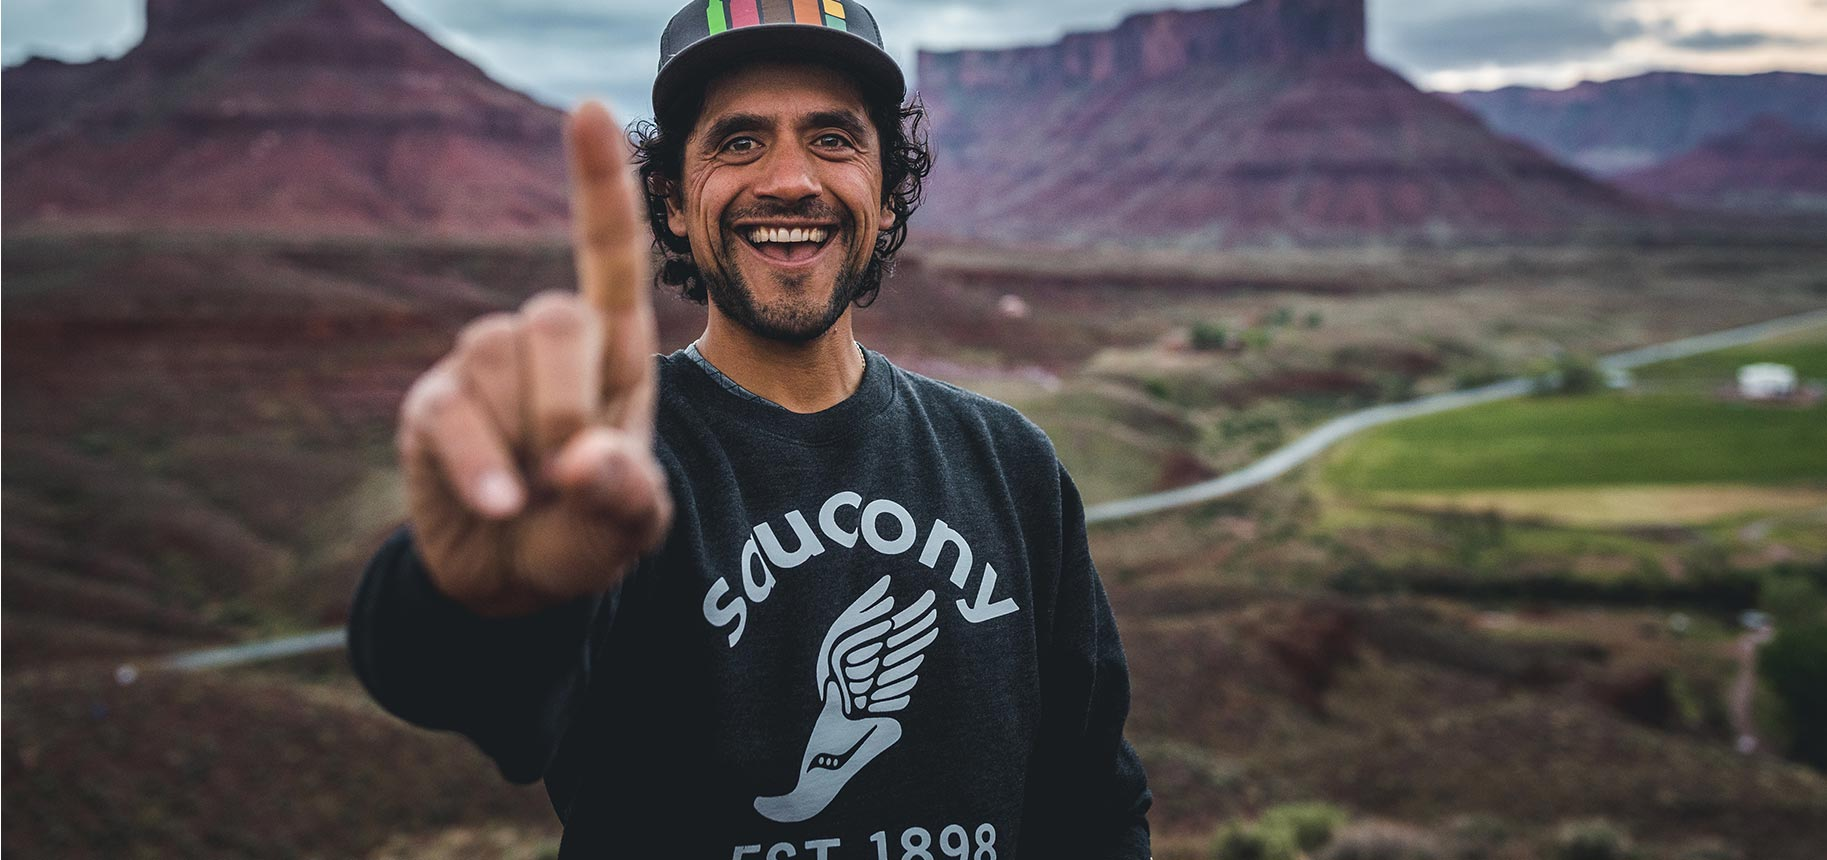 Eduardo Garcia's smiling face in a rainbow hat and Saucony EST 1898 sweatshirt showing his index finger as number 1.